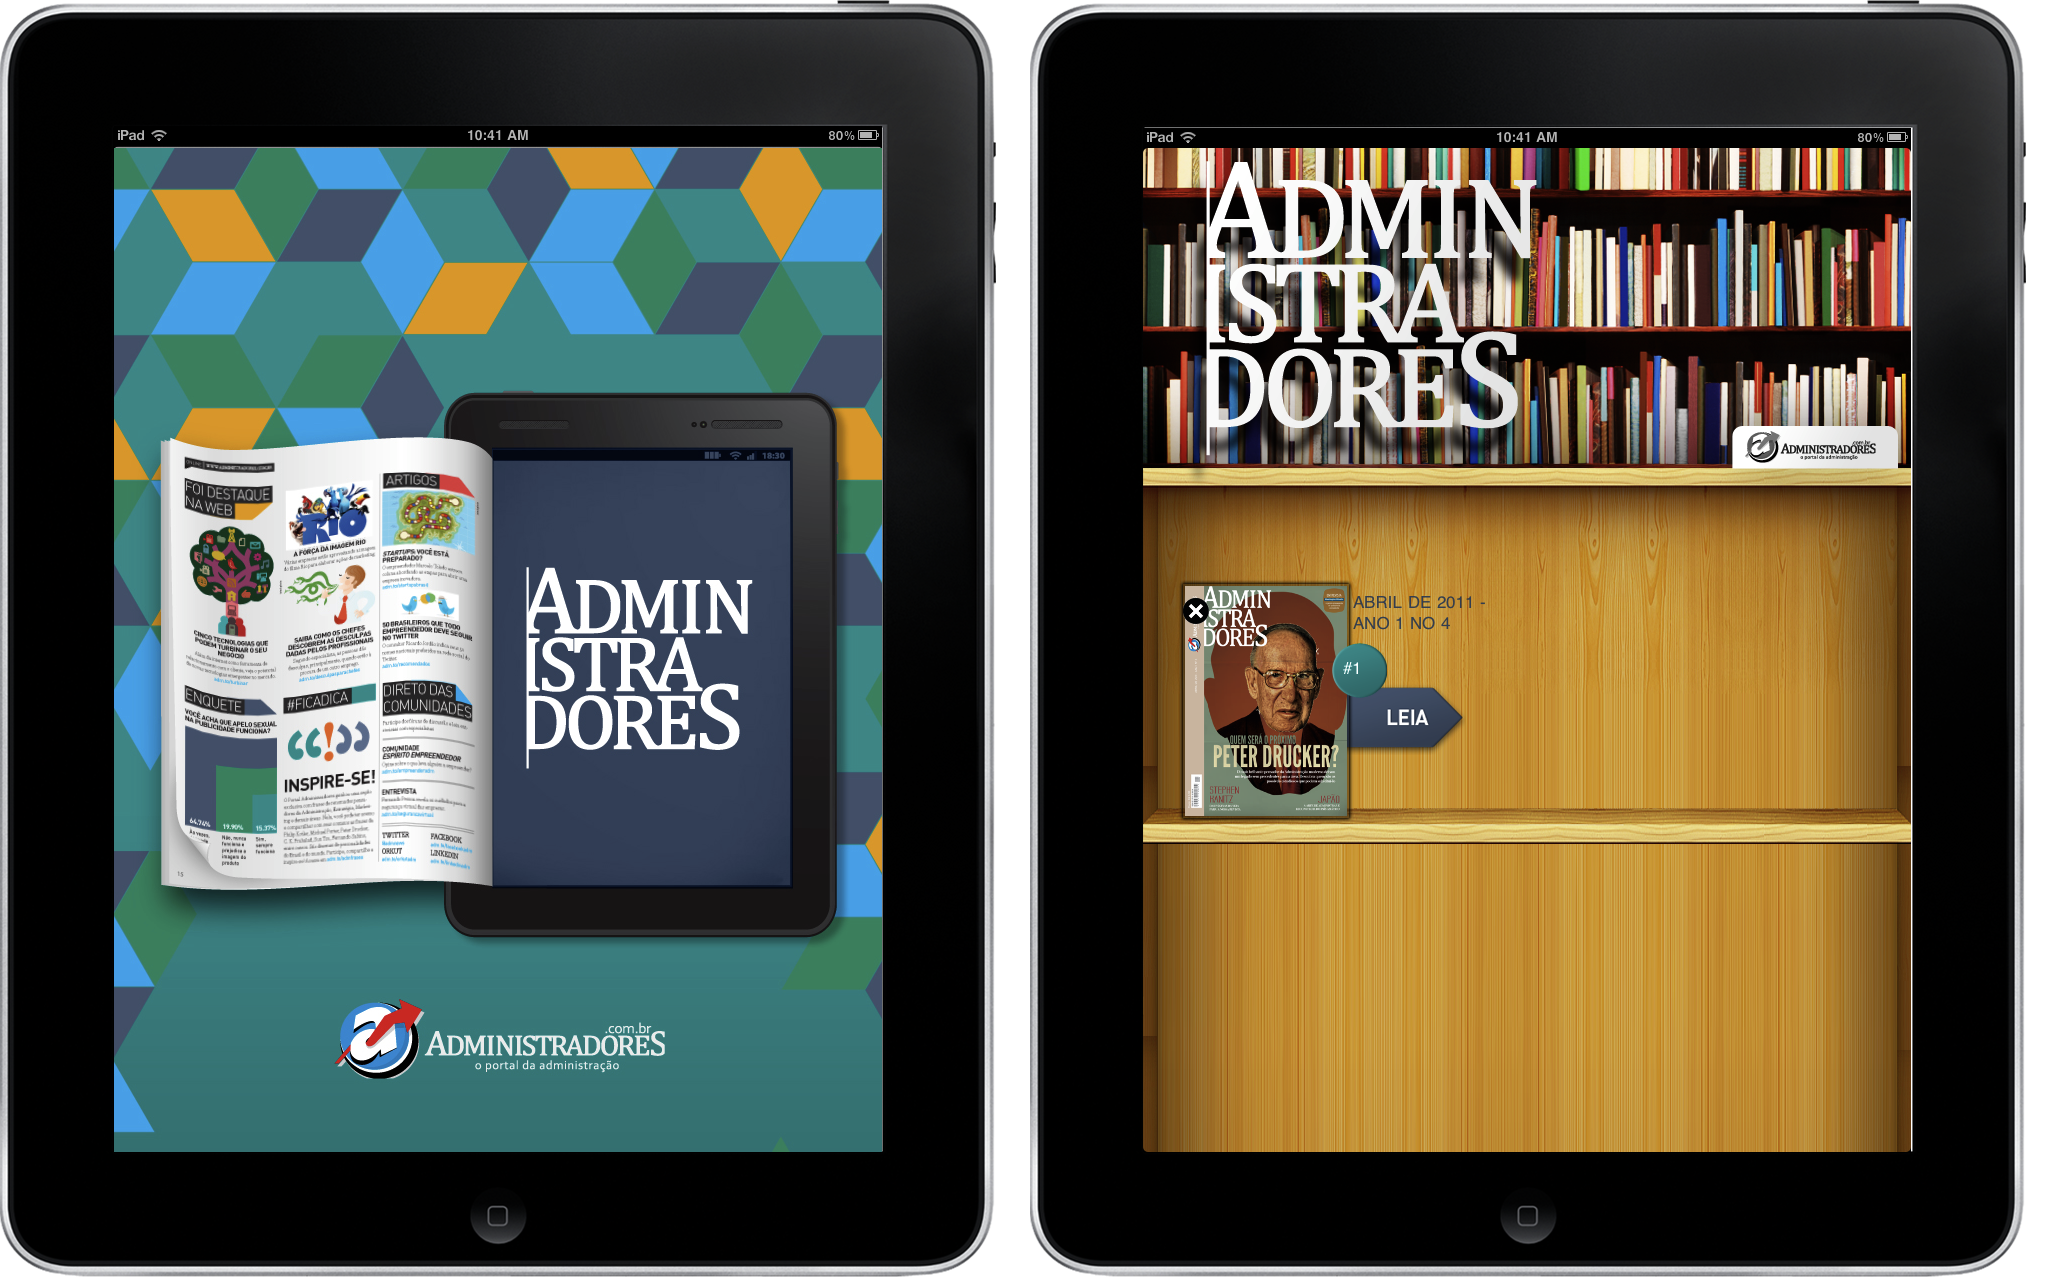 Administradores e Revista Tablet no iPad